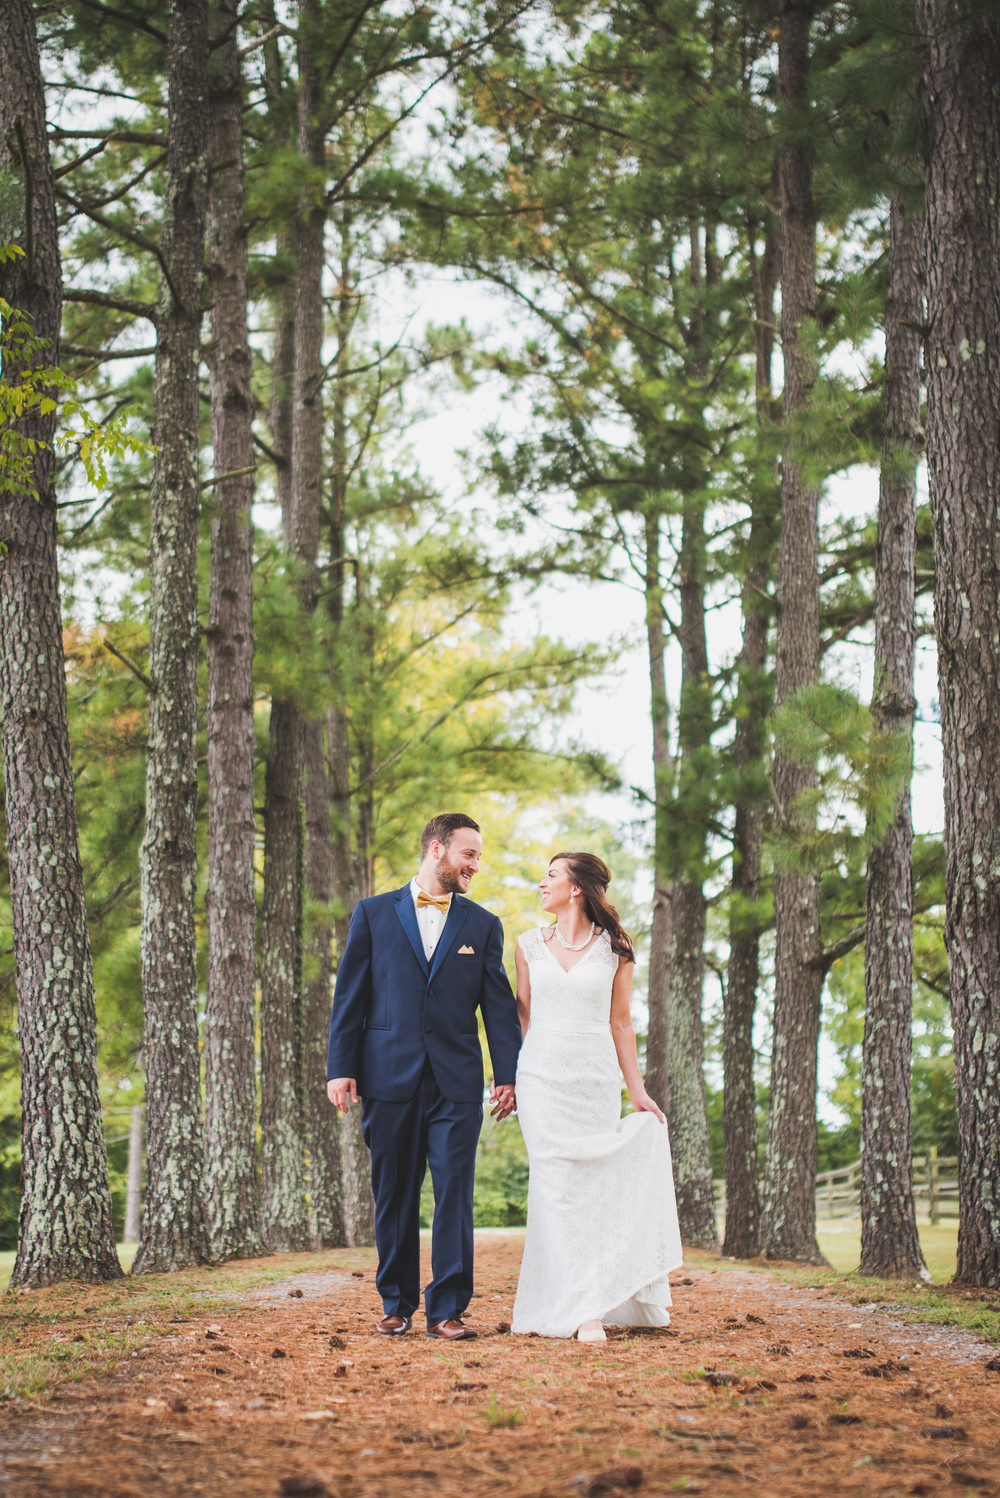 Duck Pond Farm Nashville Wedding Photographer-25.jpg